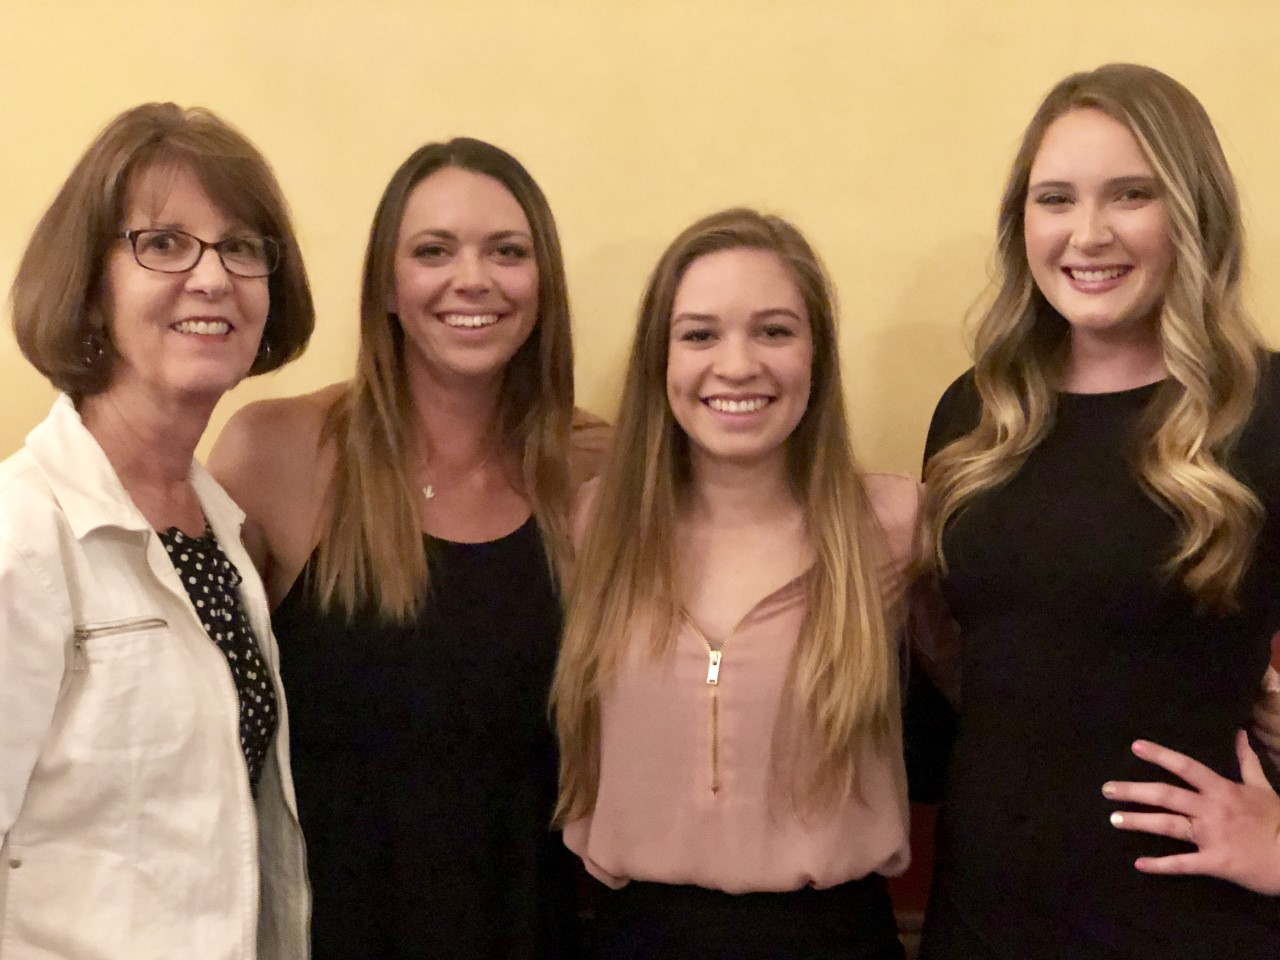 Left to right, Melinda Lynch, Amber Buzzard, Megan Borzone, and Alyssa Snow at opening night of the 2019 American Institute of Floral Designers Symposium.